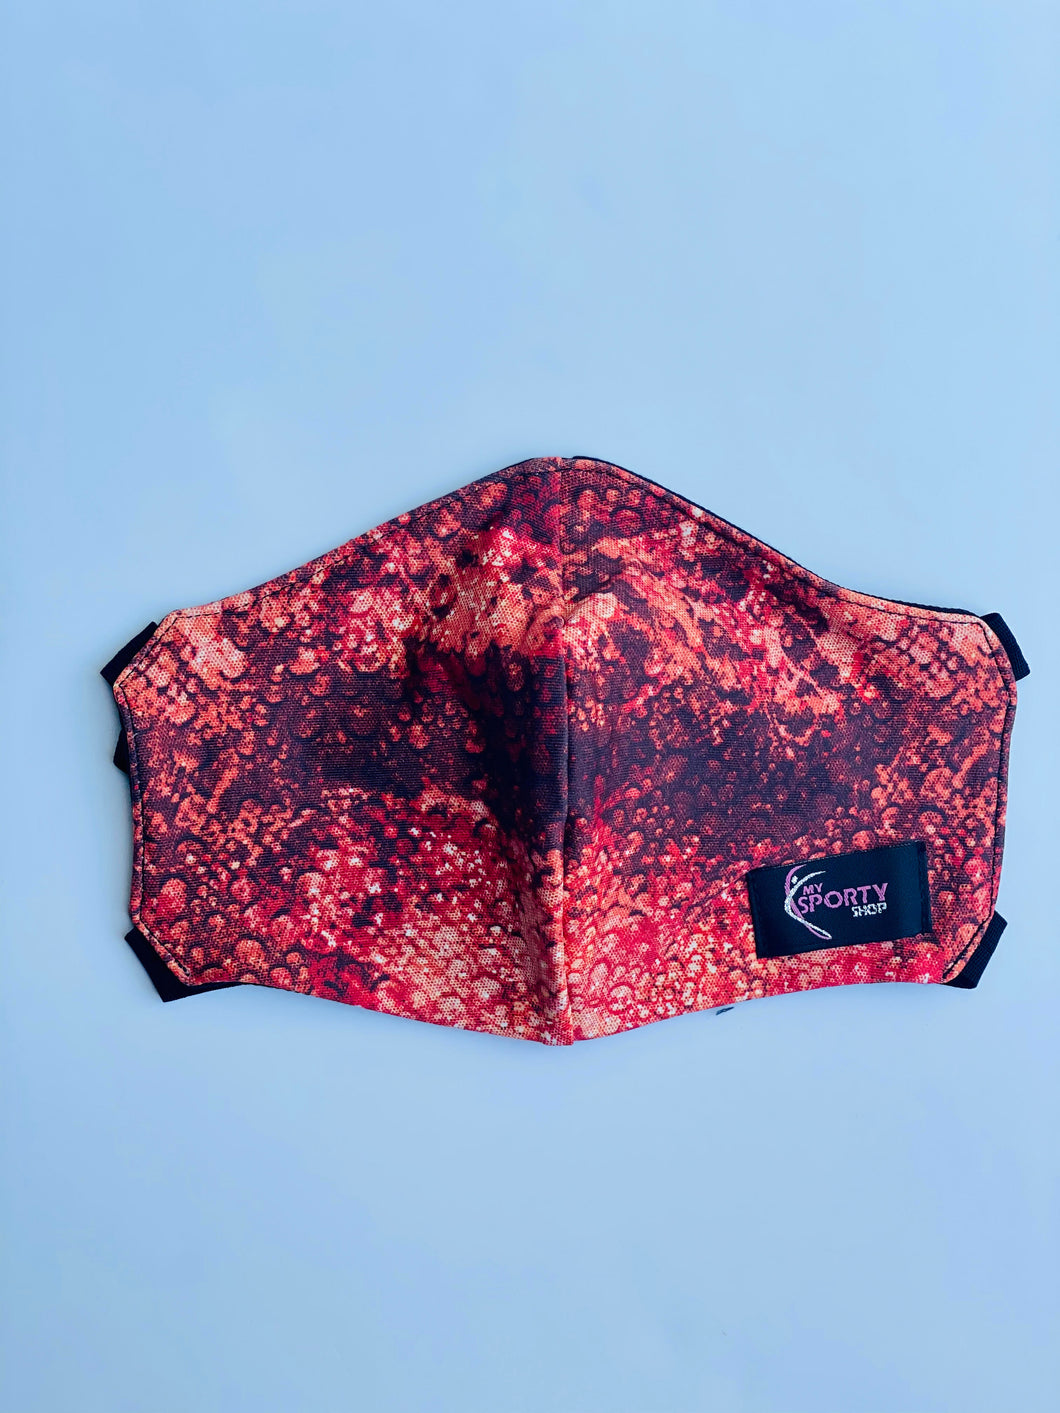 My Sporty Wear Triple-Layered Face Mask - Red Snakeskin